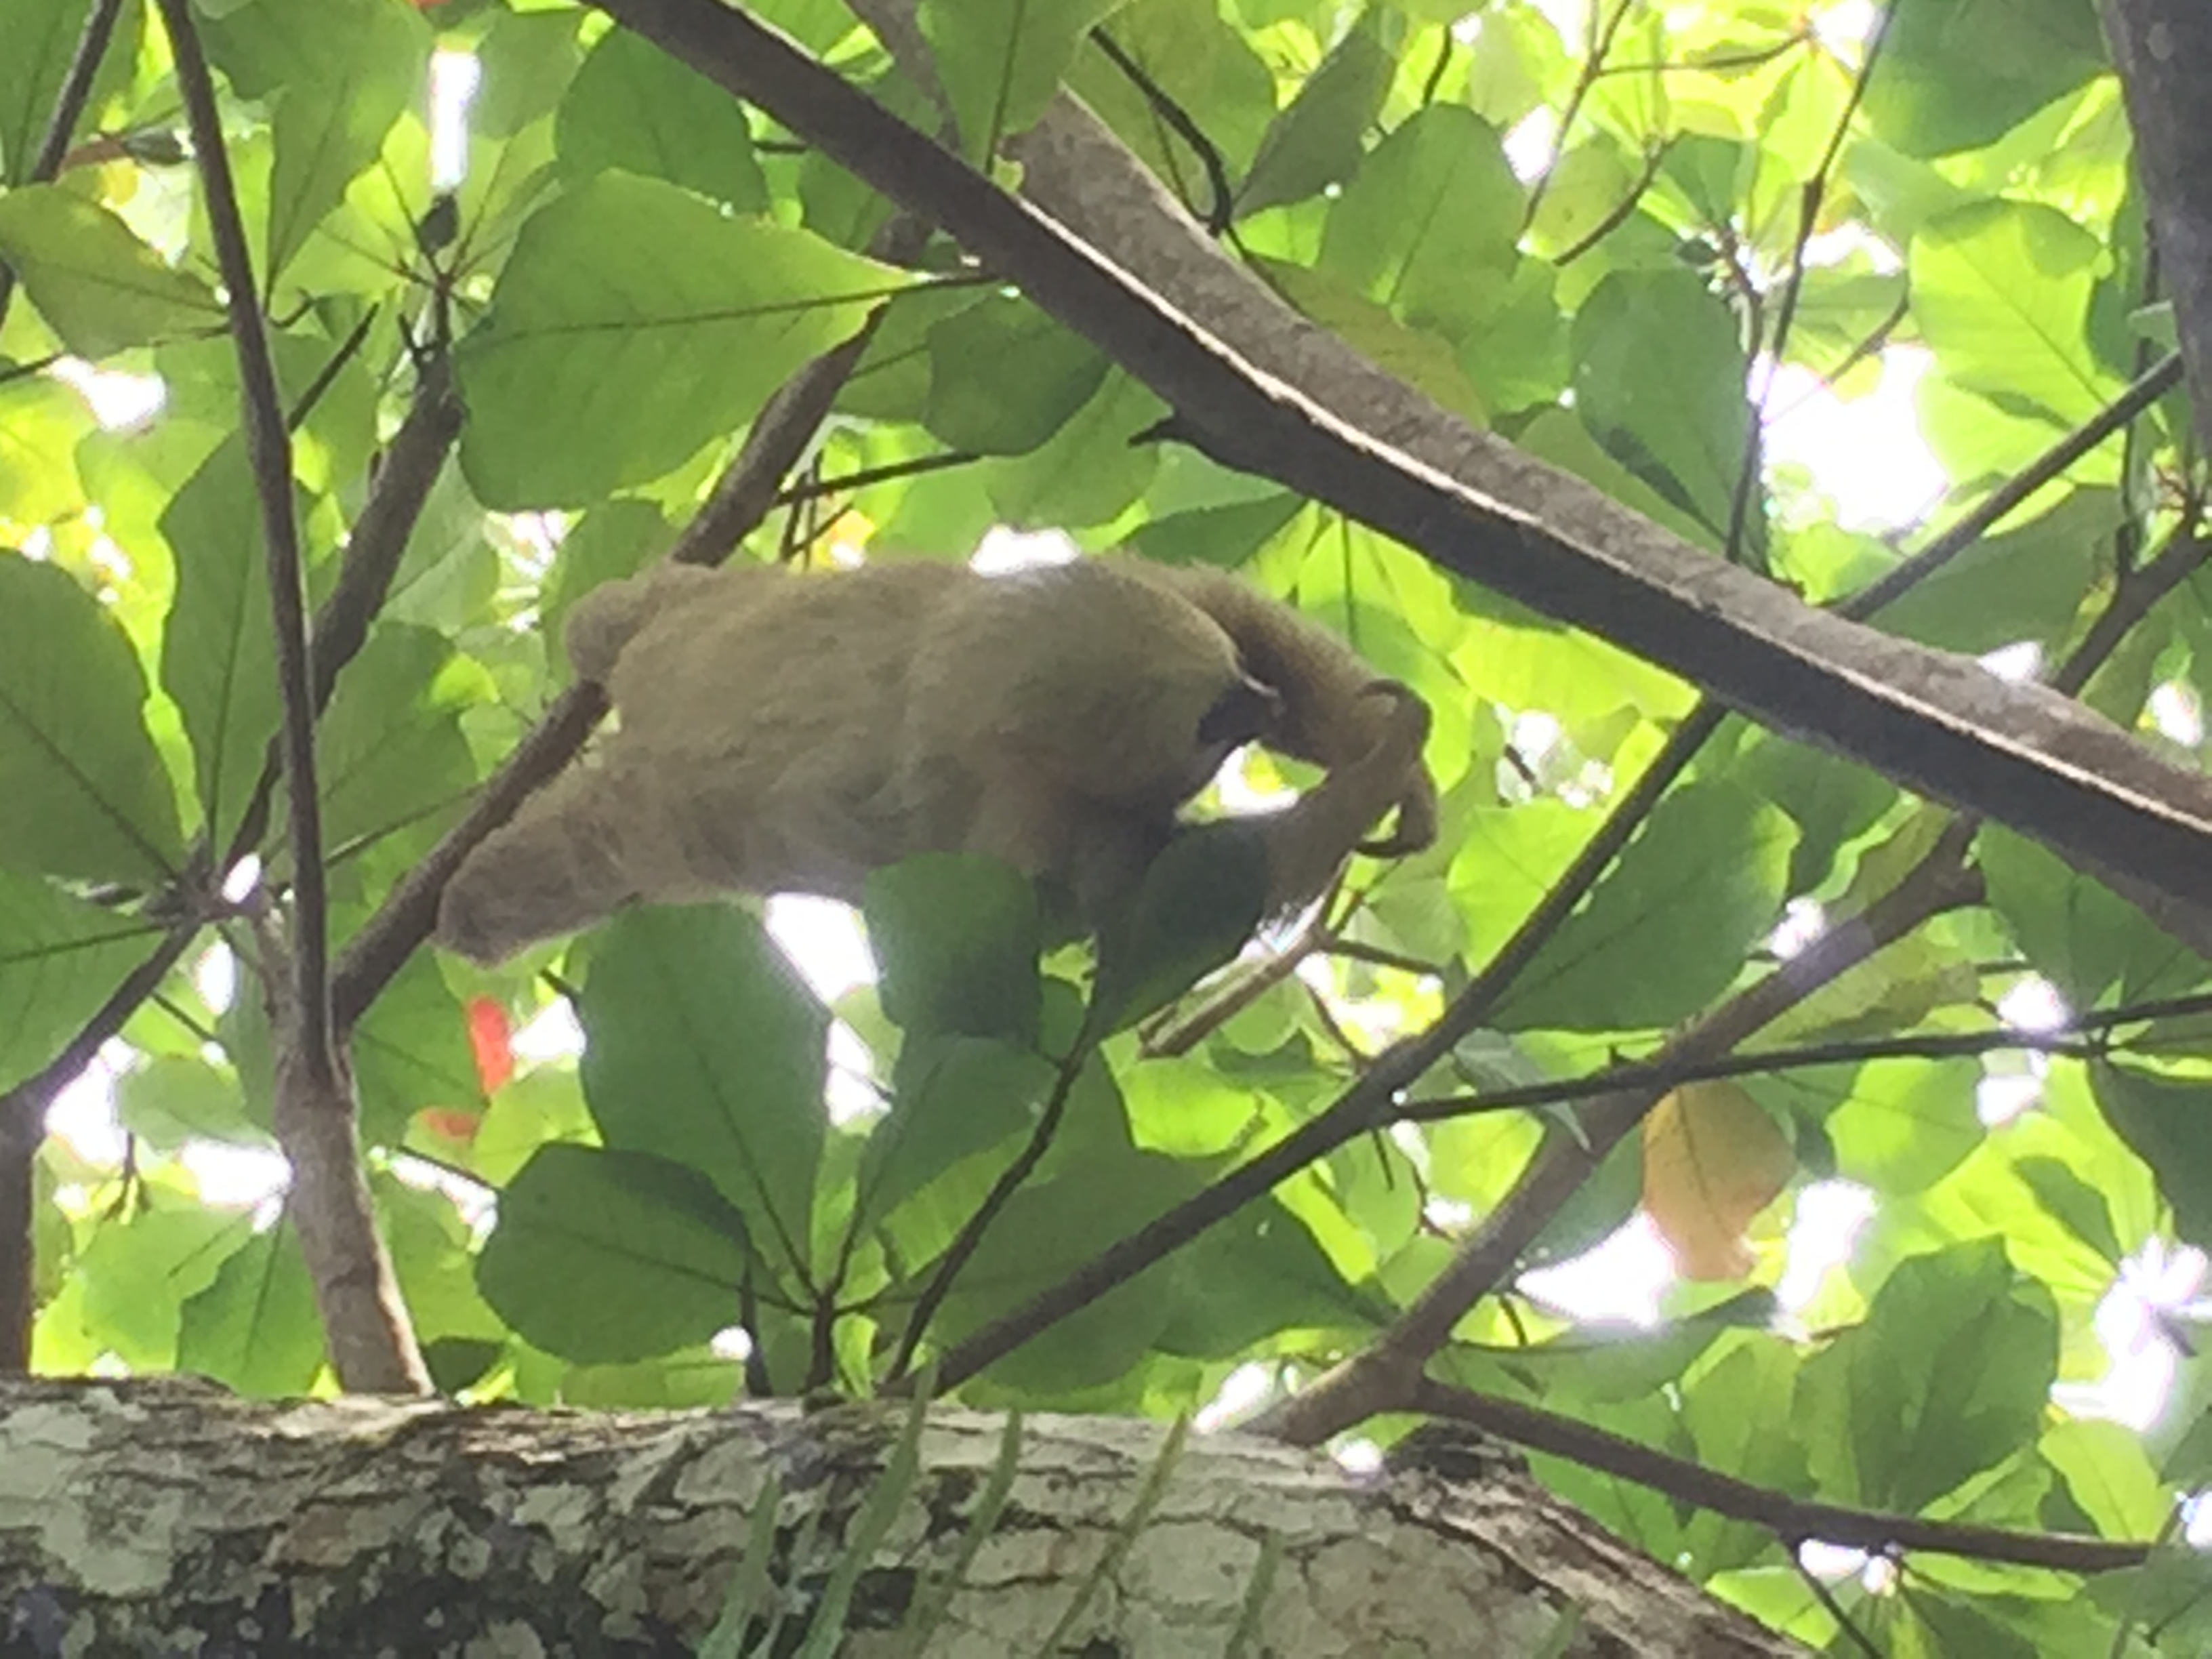 Sloth at our hotel